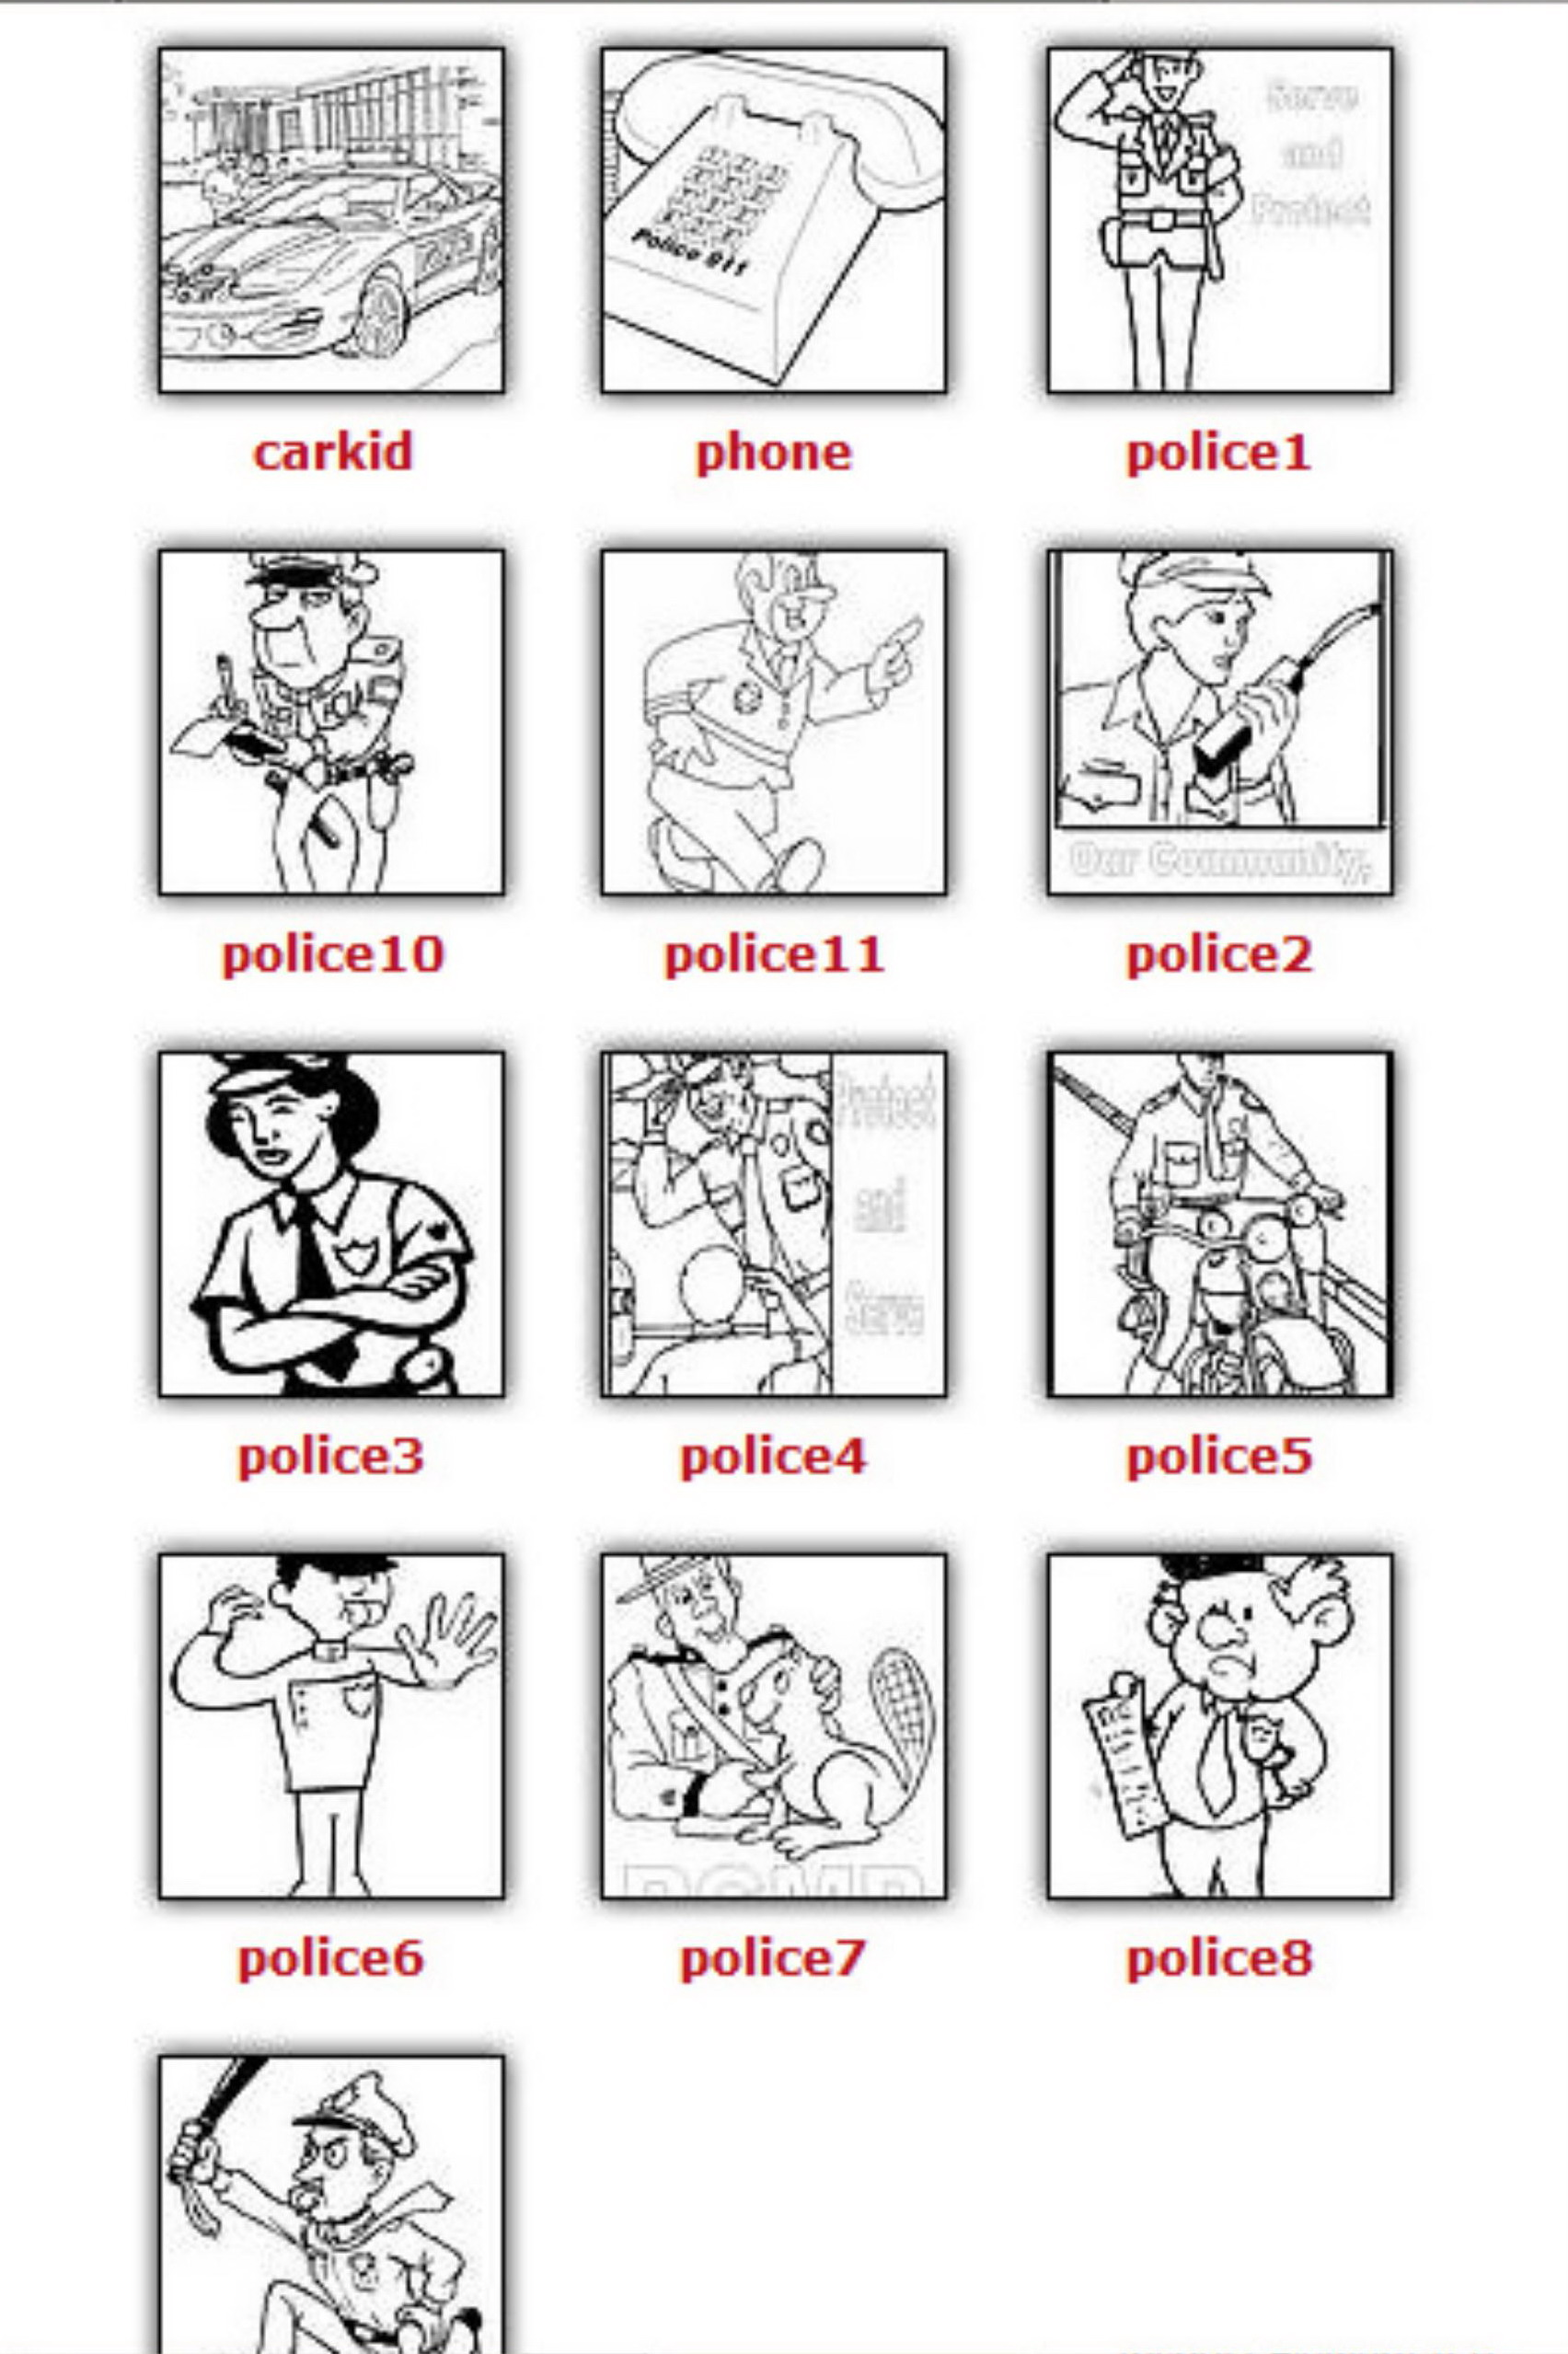 Printables Free Community Helpers Worksheets safarmediapps – Community Helpers Worksheets for Kindergarten